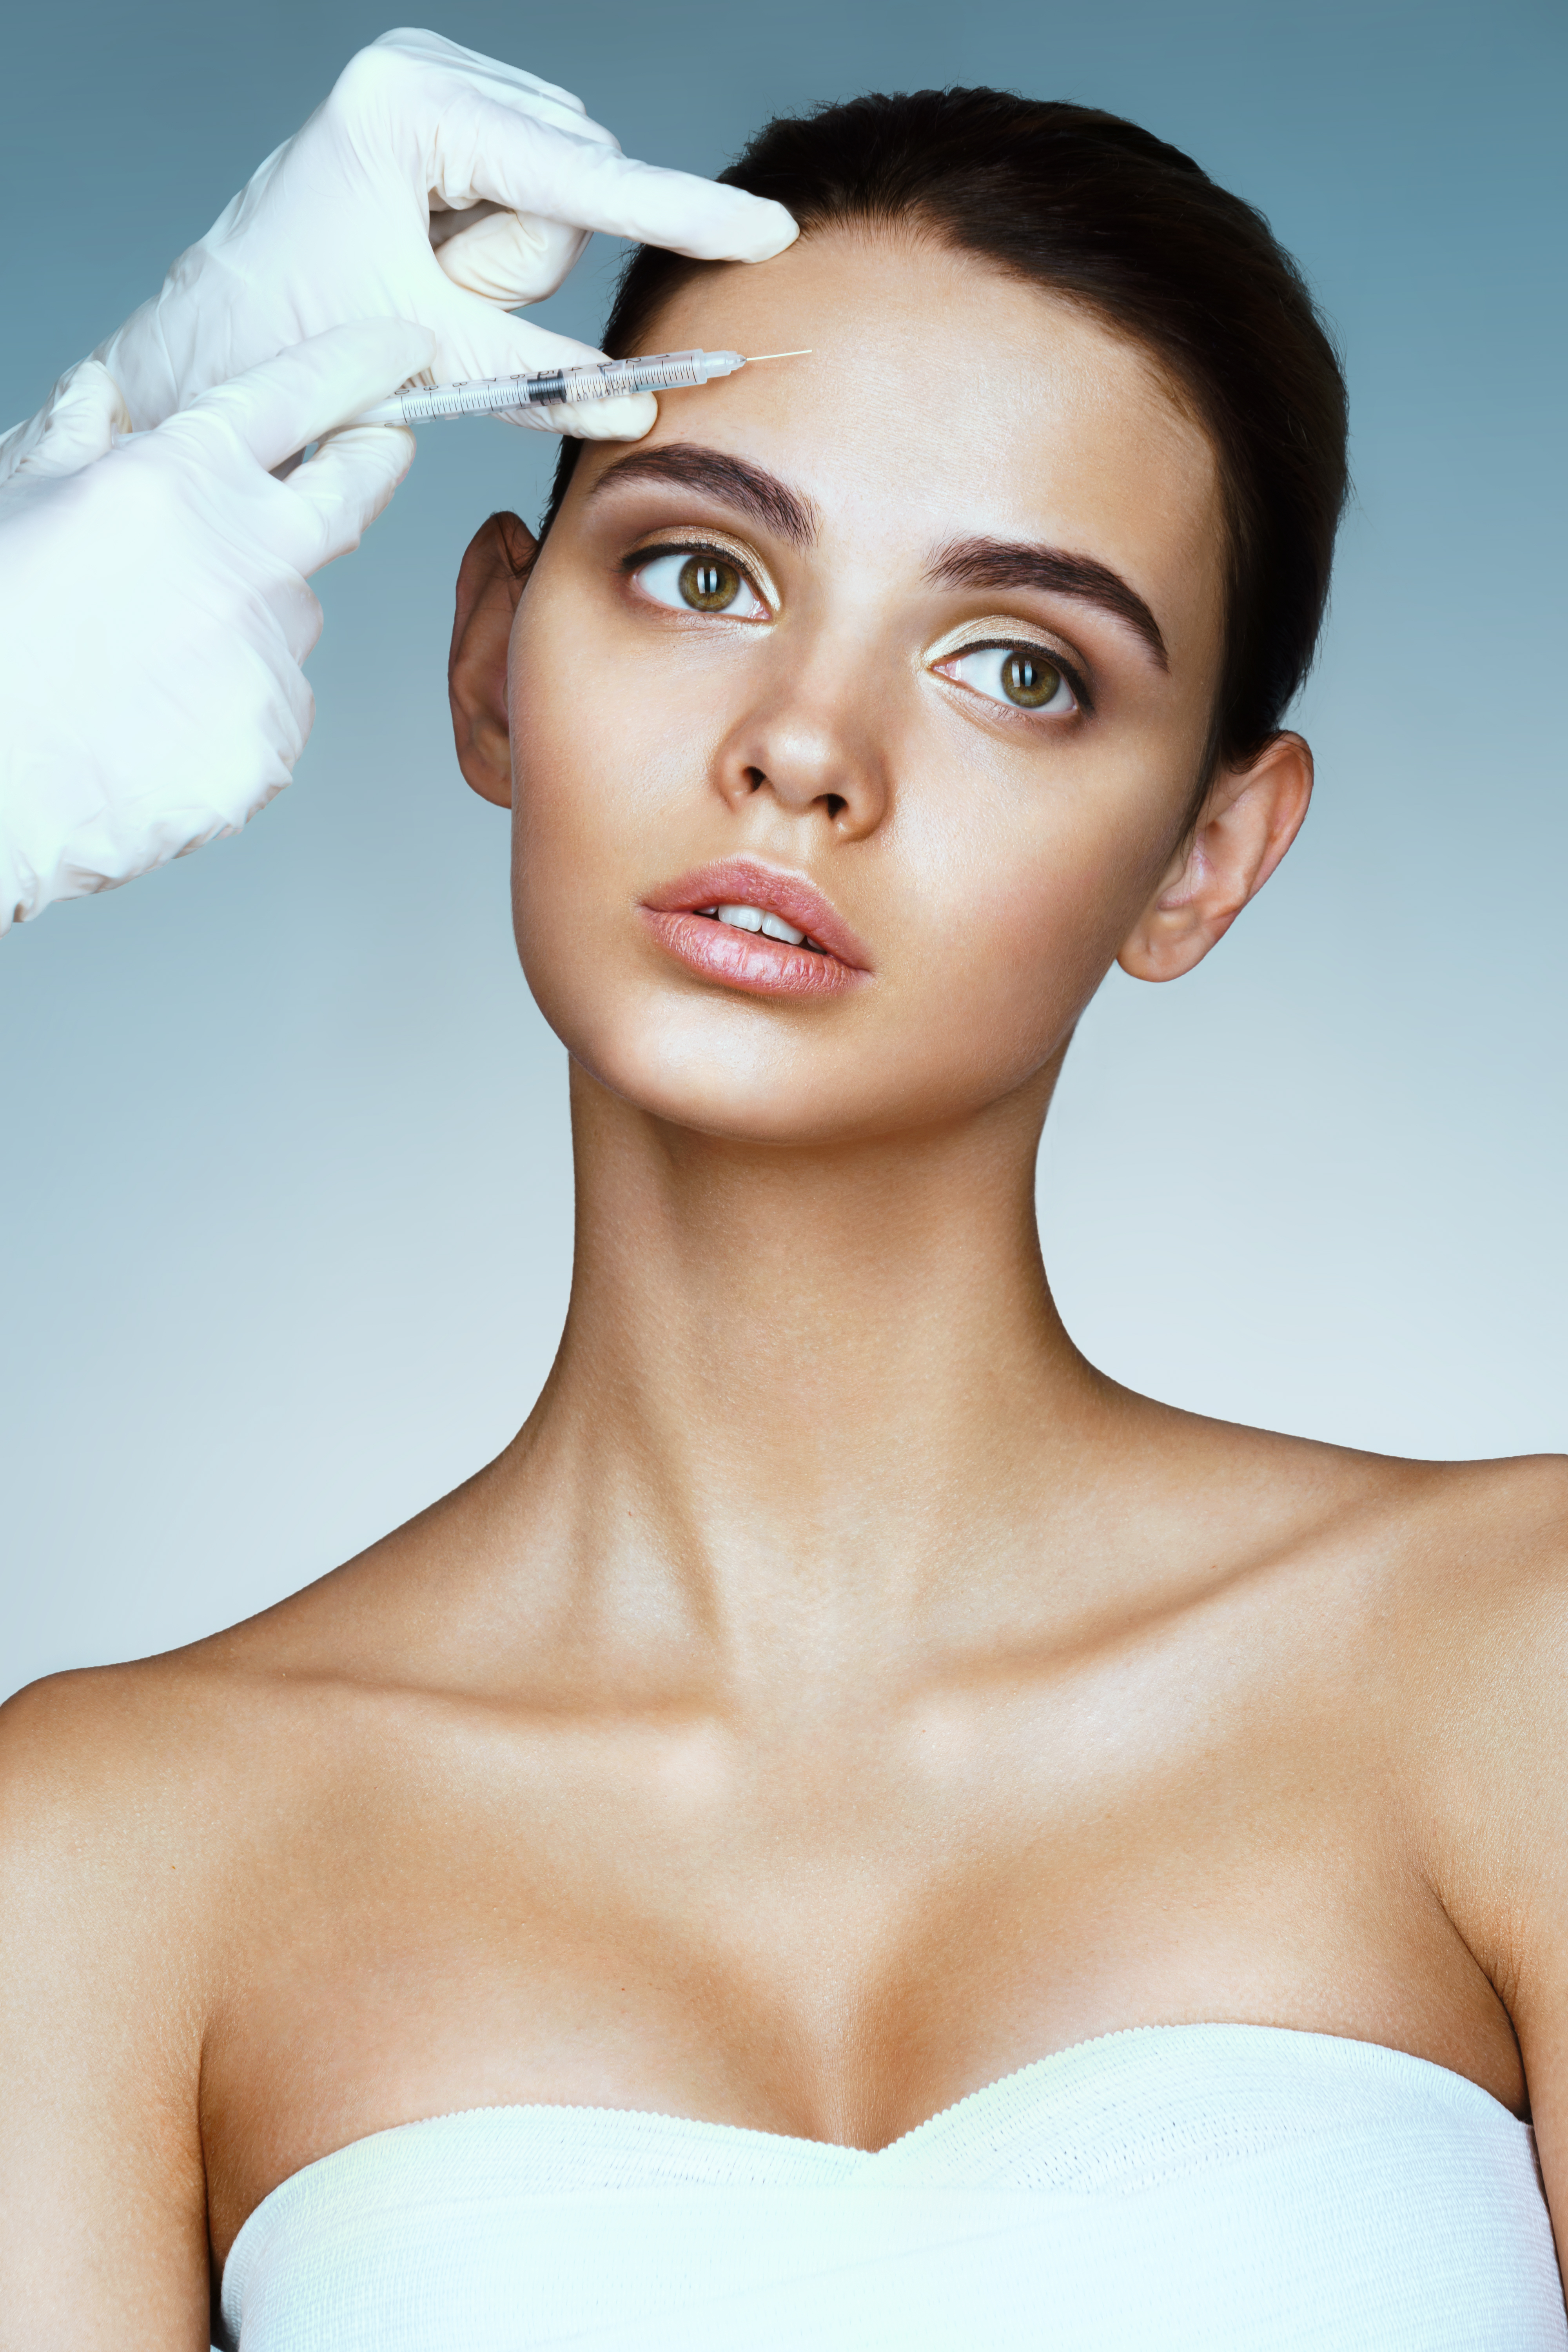 24 Hour Skin Tightening With A New Botox! - Skin Tight Naturals